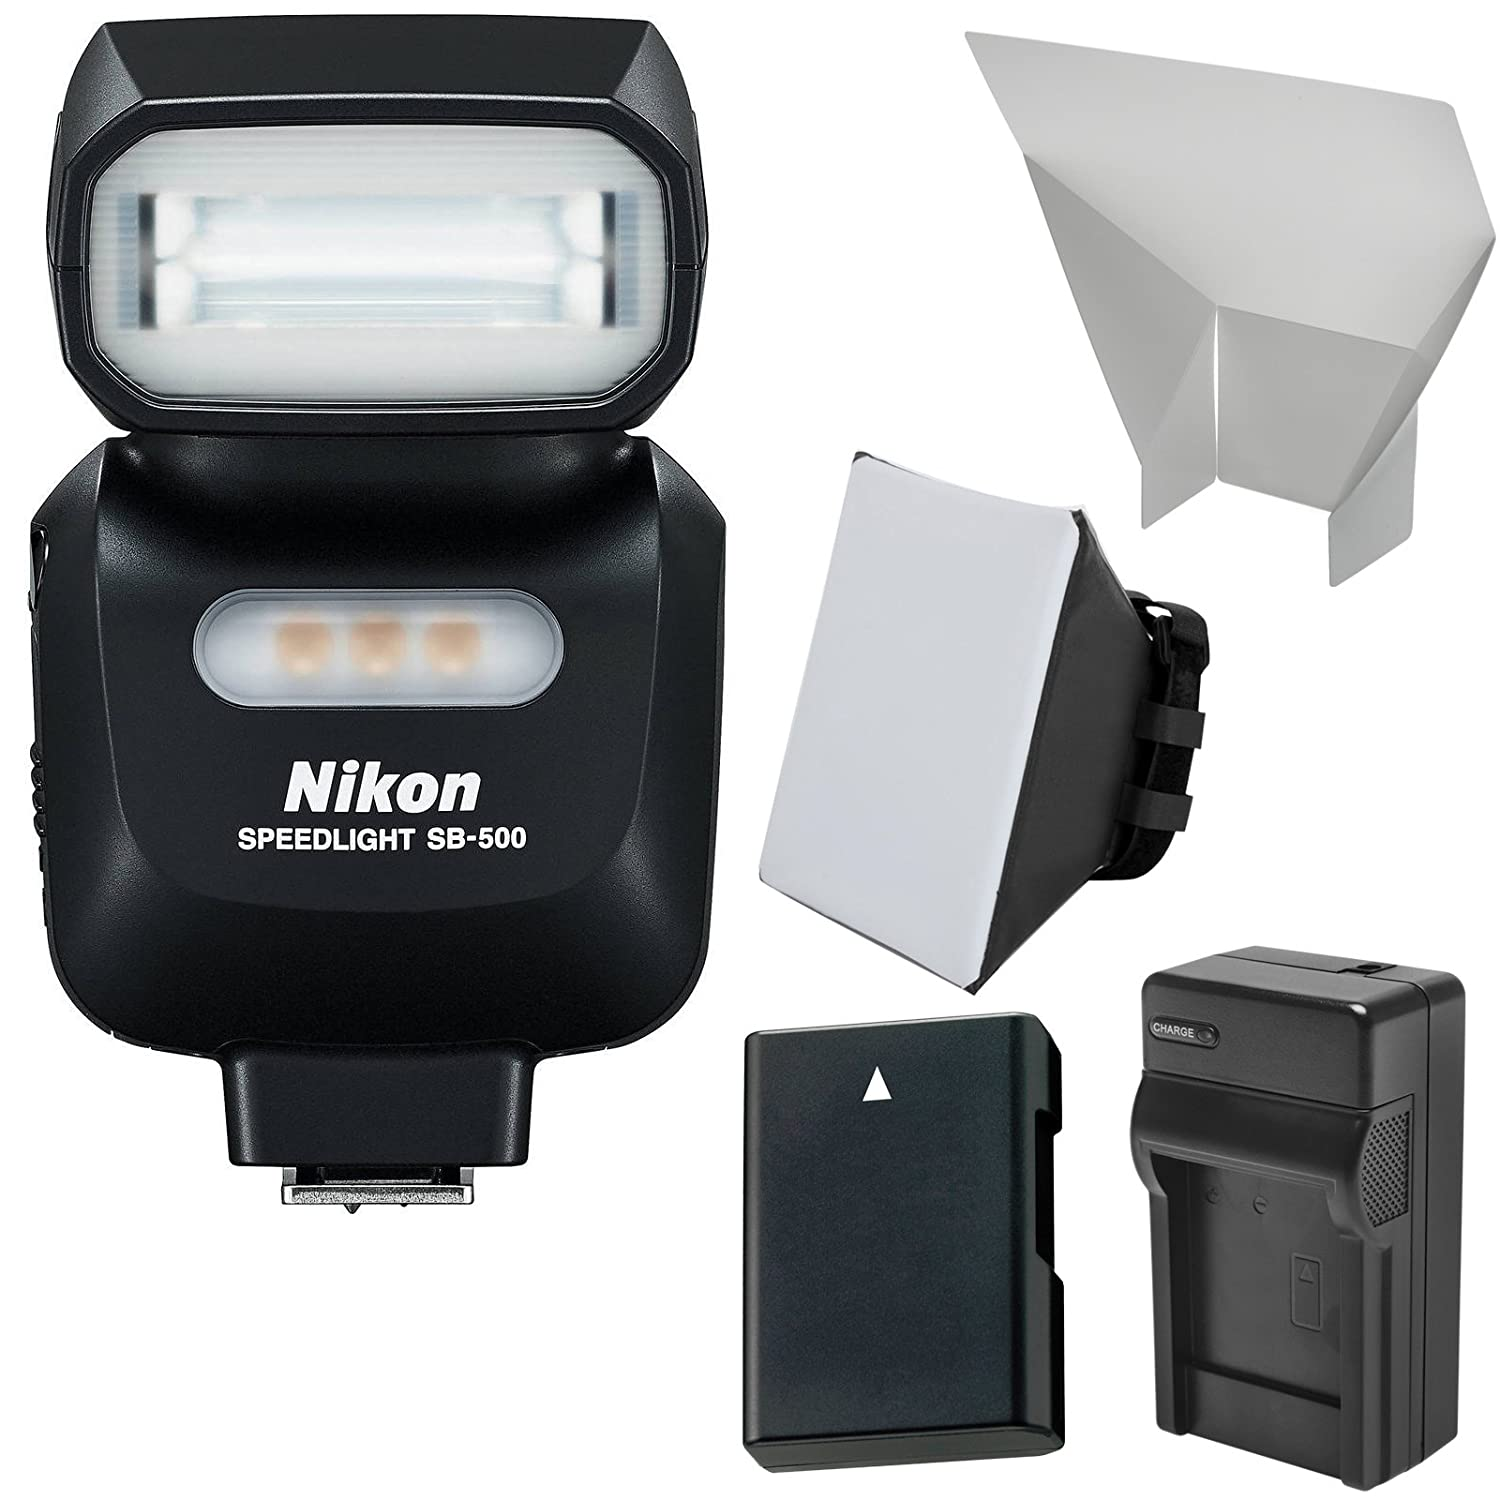 Nikon SB-500 AF Speedlight Flash & LED Video Light + EN-EL14 Battery & Charger + Softbox + Reflector Kit for D3200, D3300, D5100, D5200, D5300 Camera